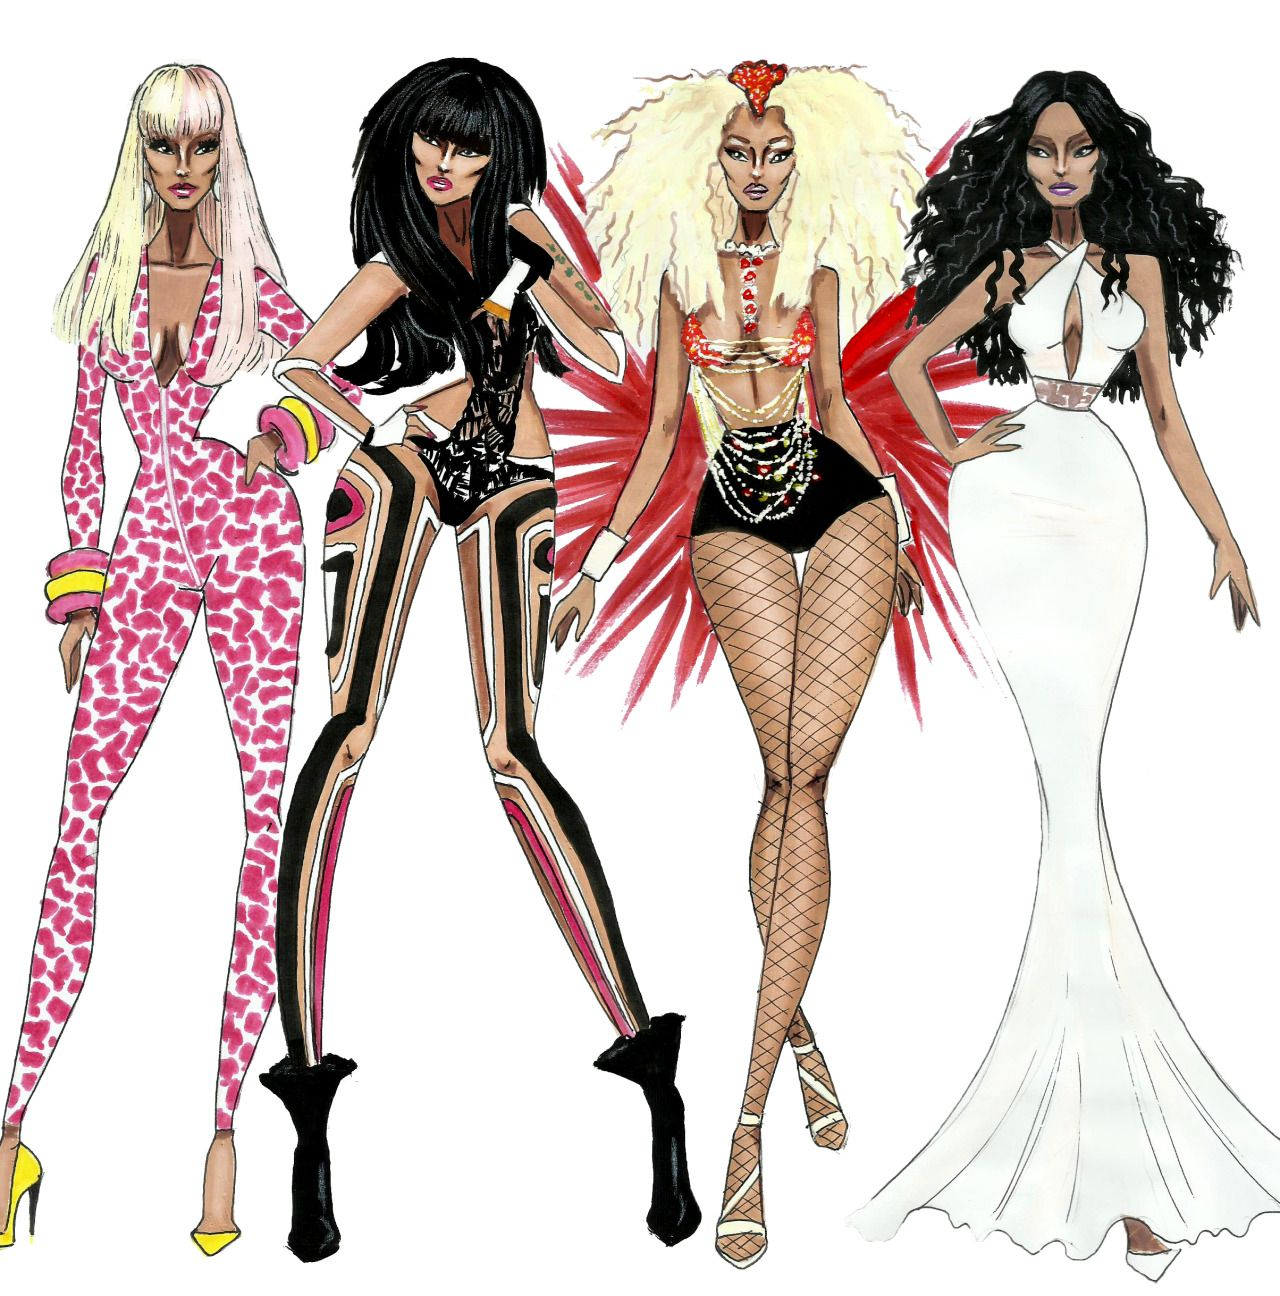 The Nicki Minaj Eras By Armand Mehidri Which One Is